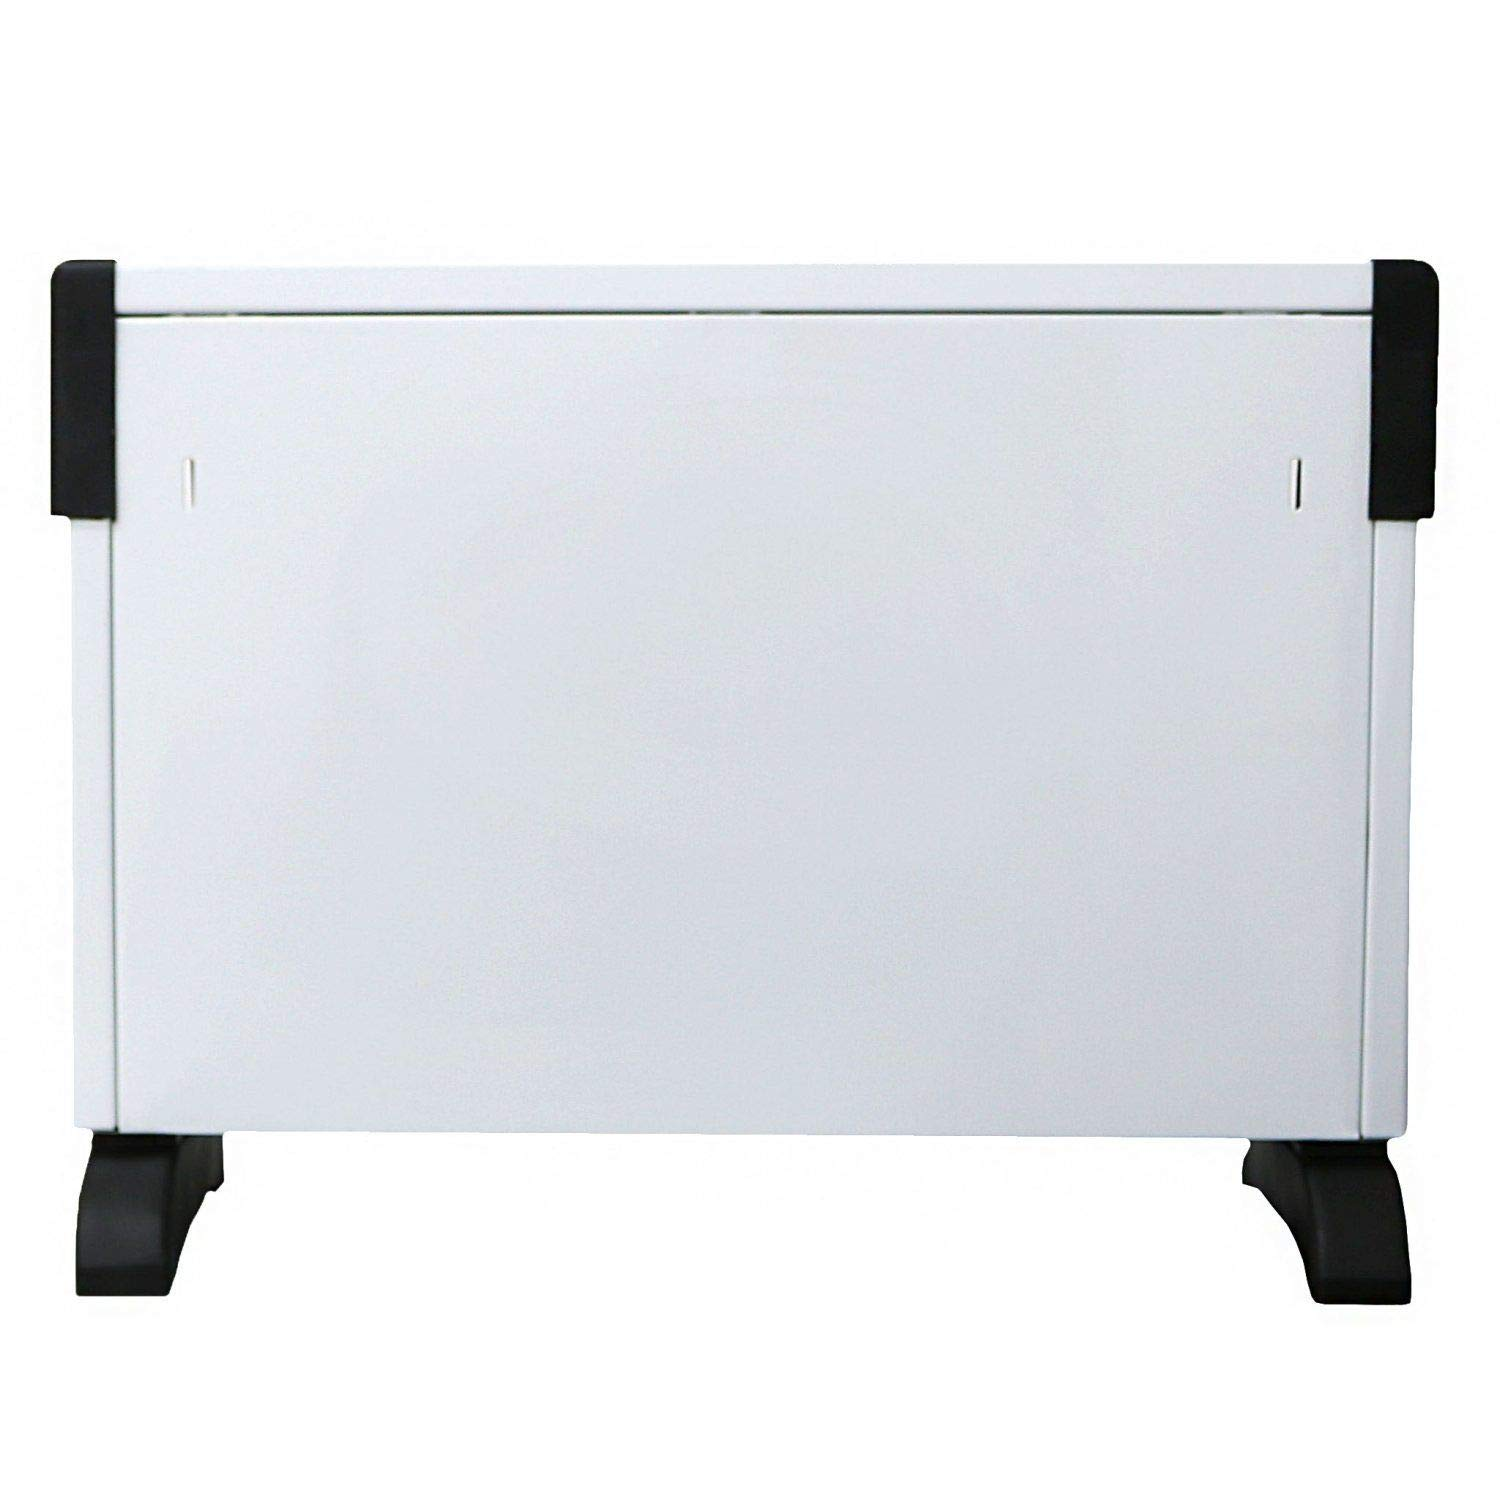 Home Guilty Gadgets 2KW Convector Heater Radiator 3 Adjustable Heat Settings Wall Mount or Free Stand